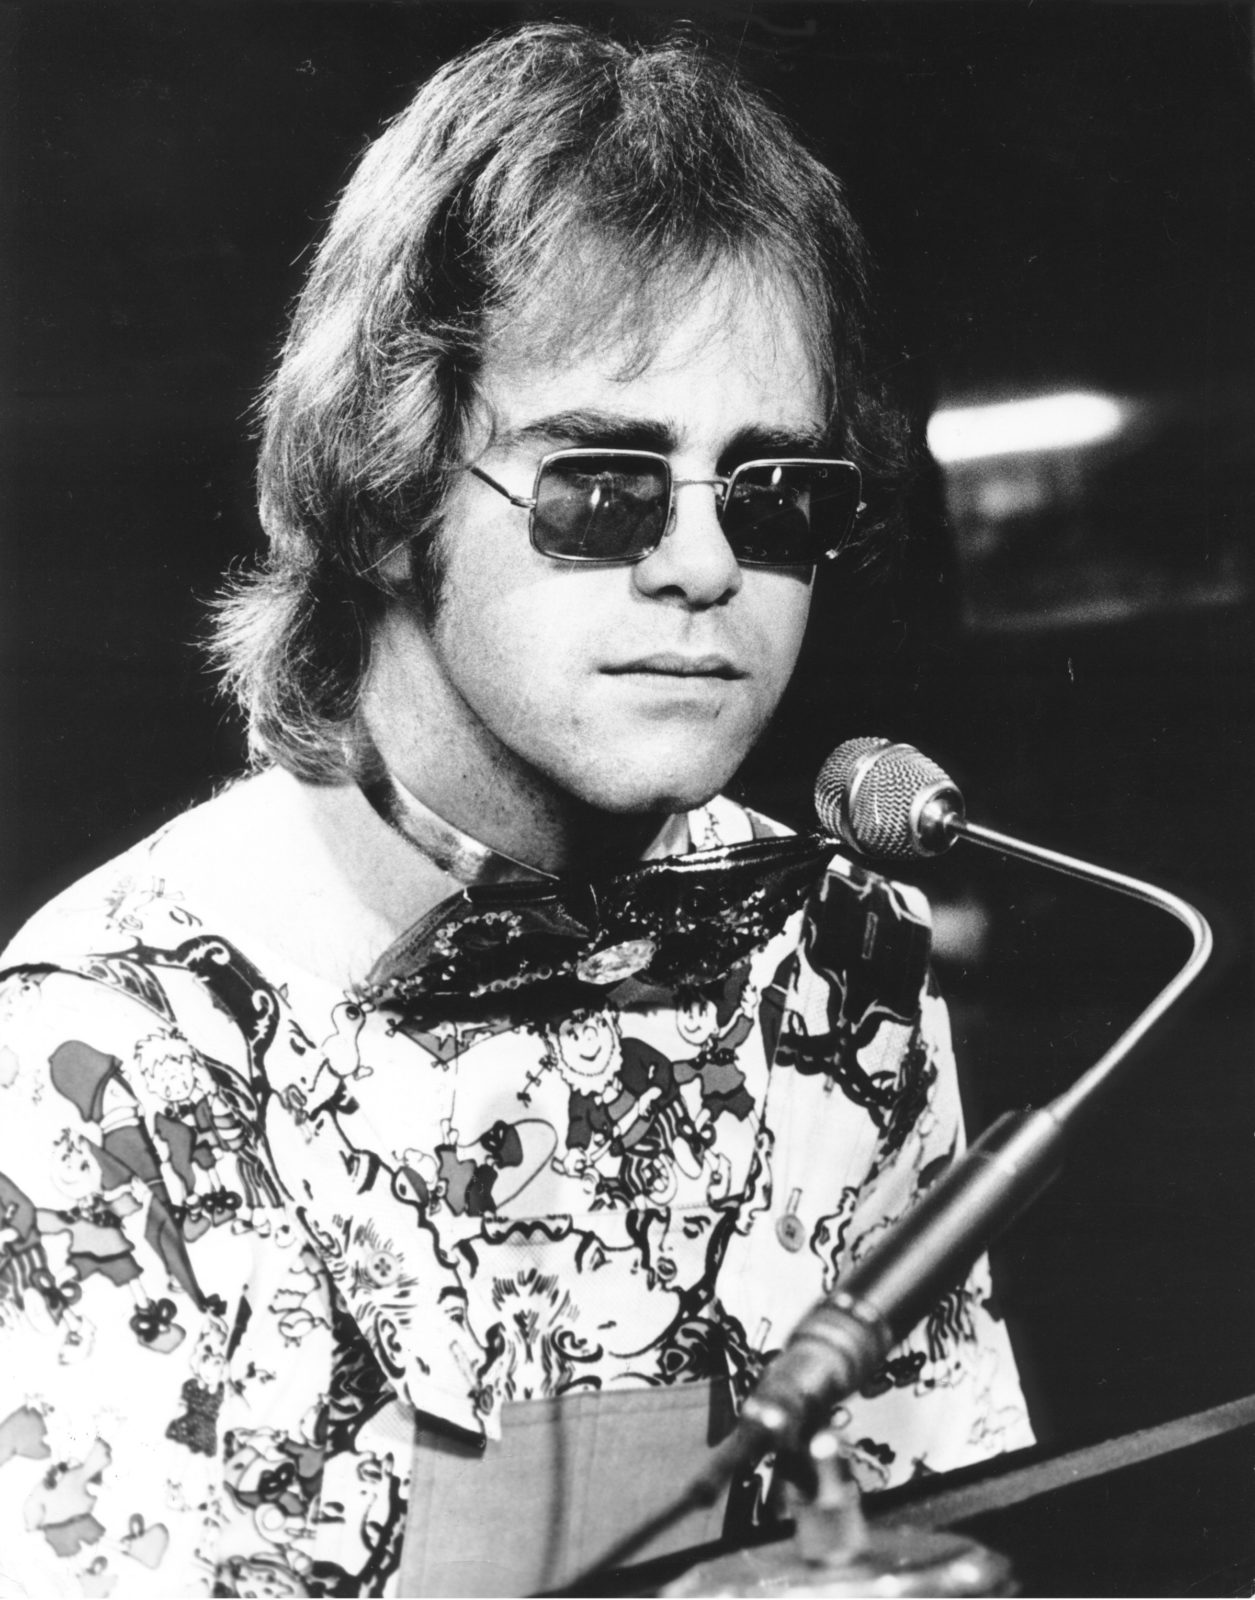 Elton John was engaged before he hit huge fame in 1970. Source: Getty.